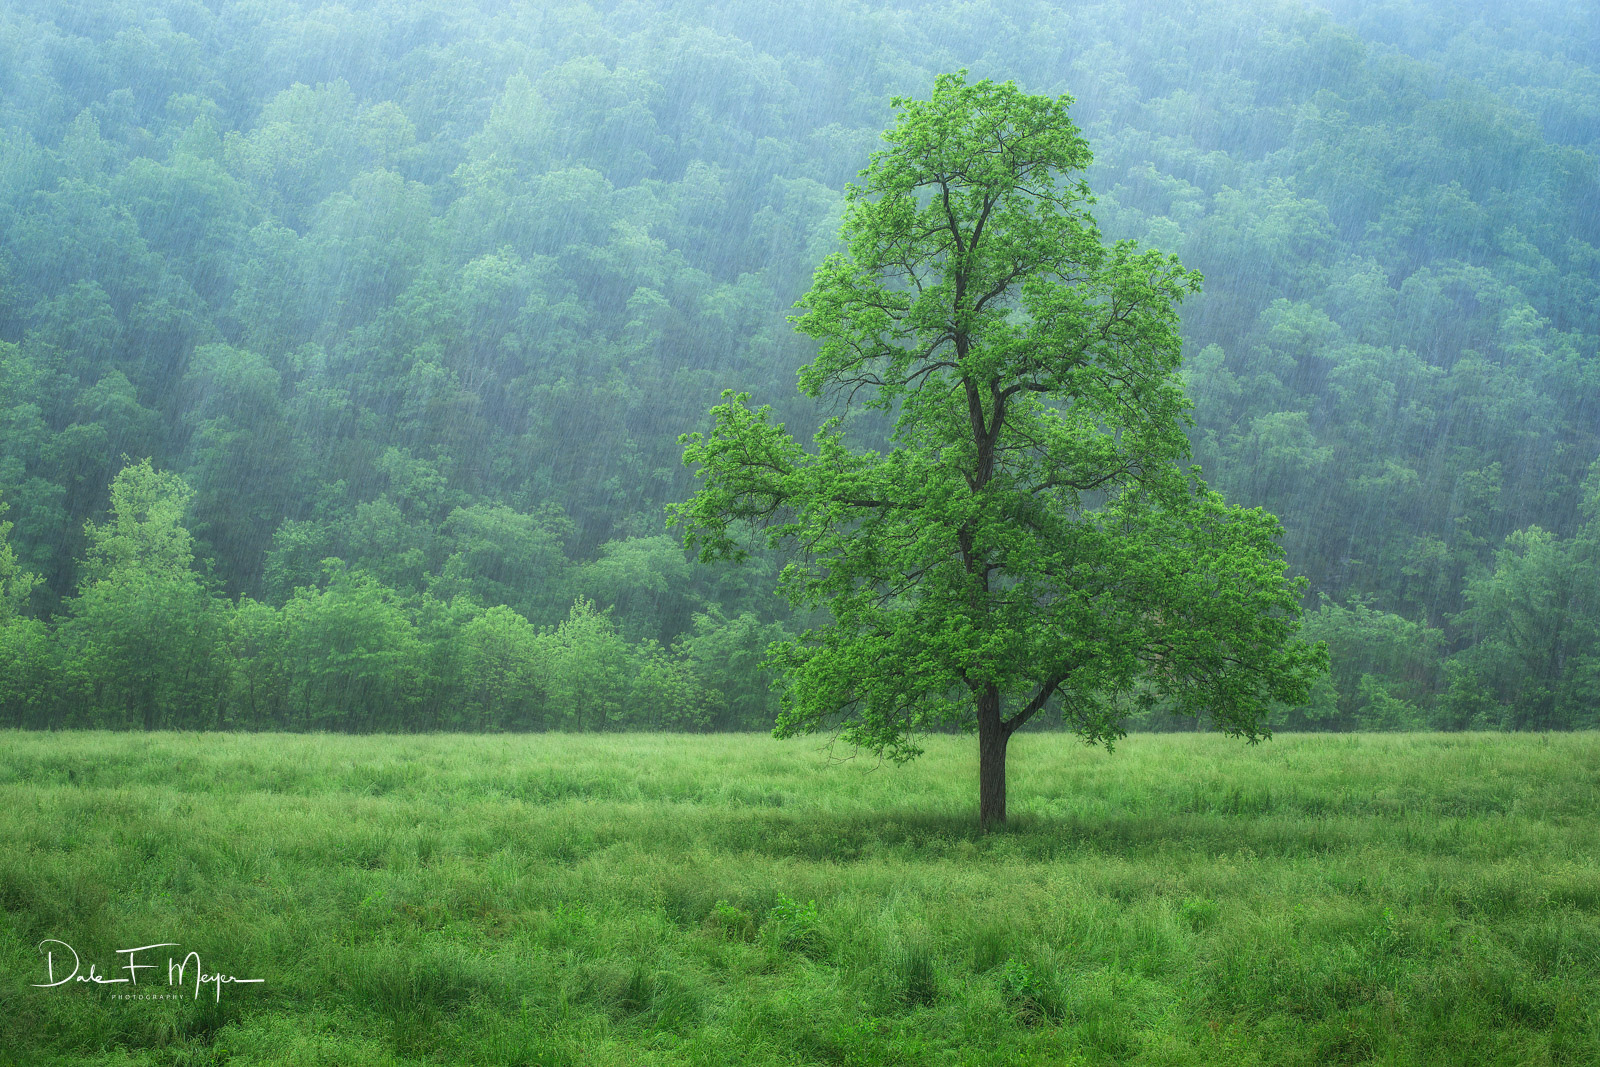 North Arkansas, Boxley Valley, Tree in Rain, spring 2015, photo